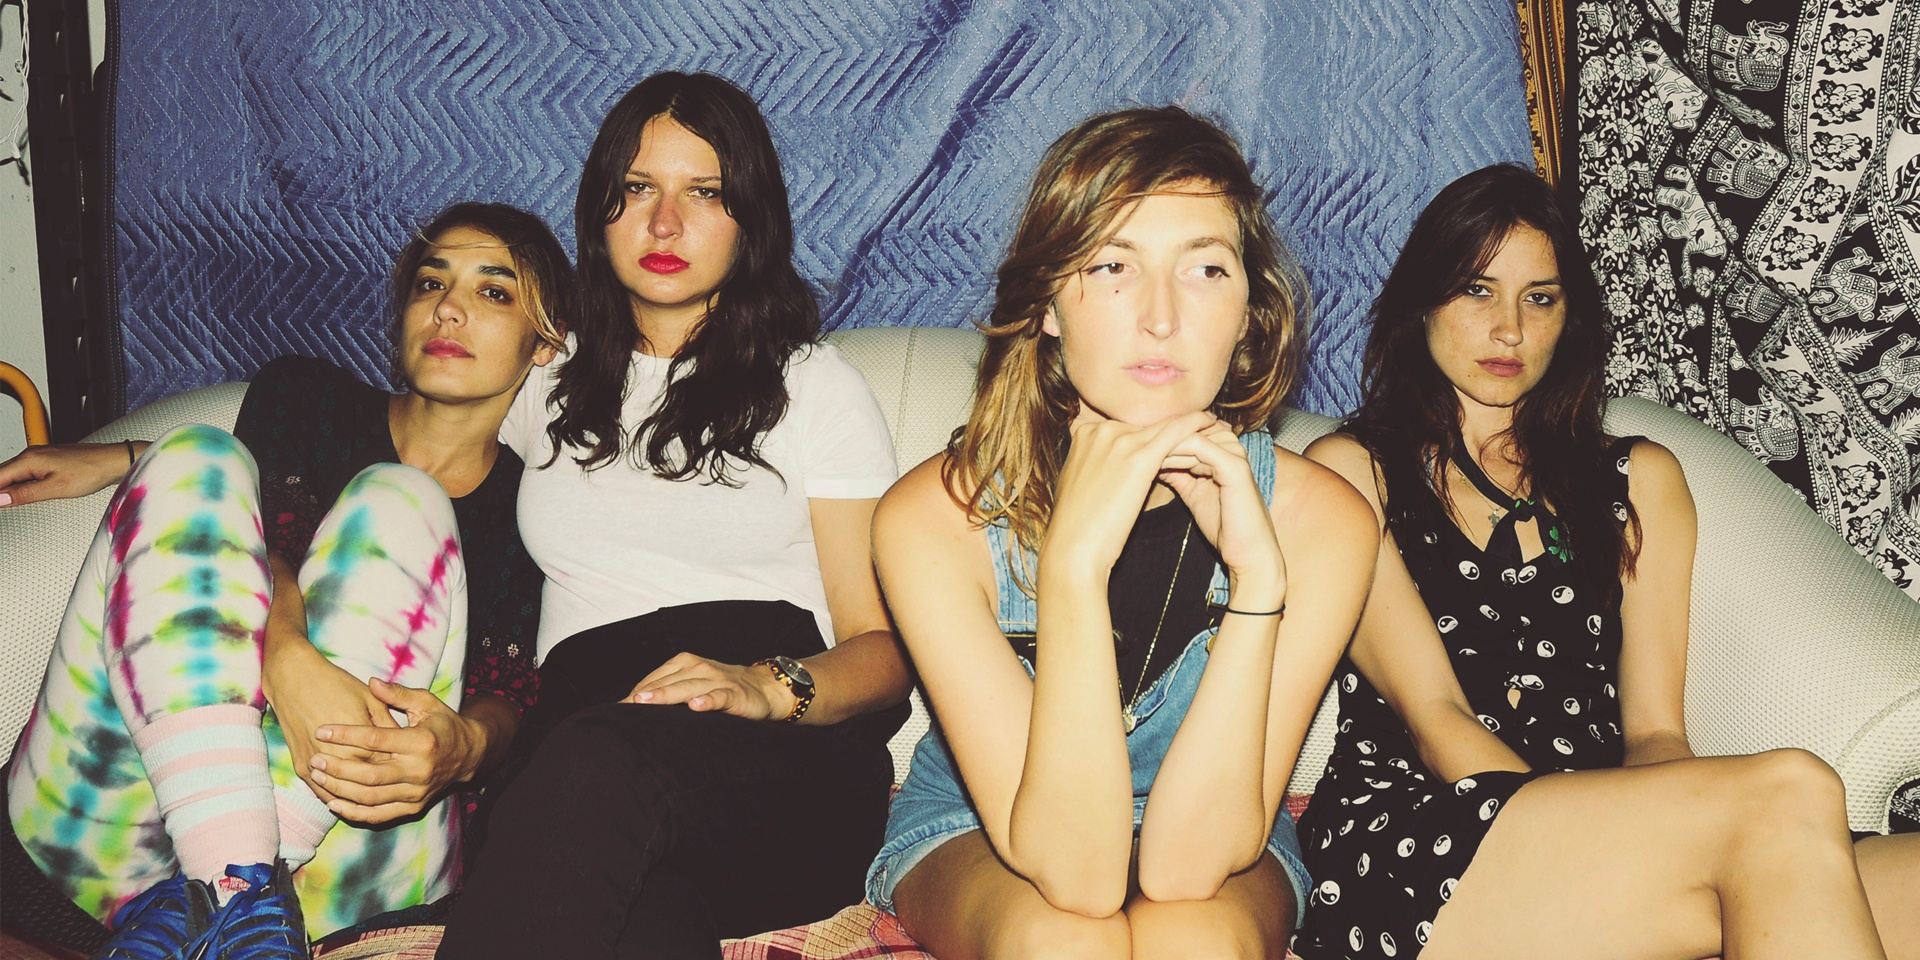 """Theresa Wayman on a decade of Warpaint: """"I've only scratched the surface... I'm just learning to make albums"""""""